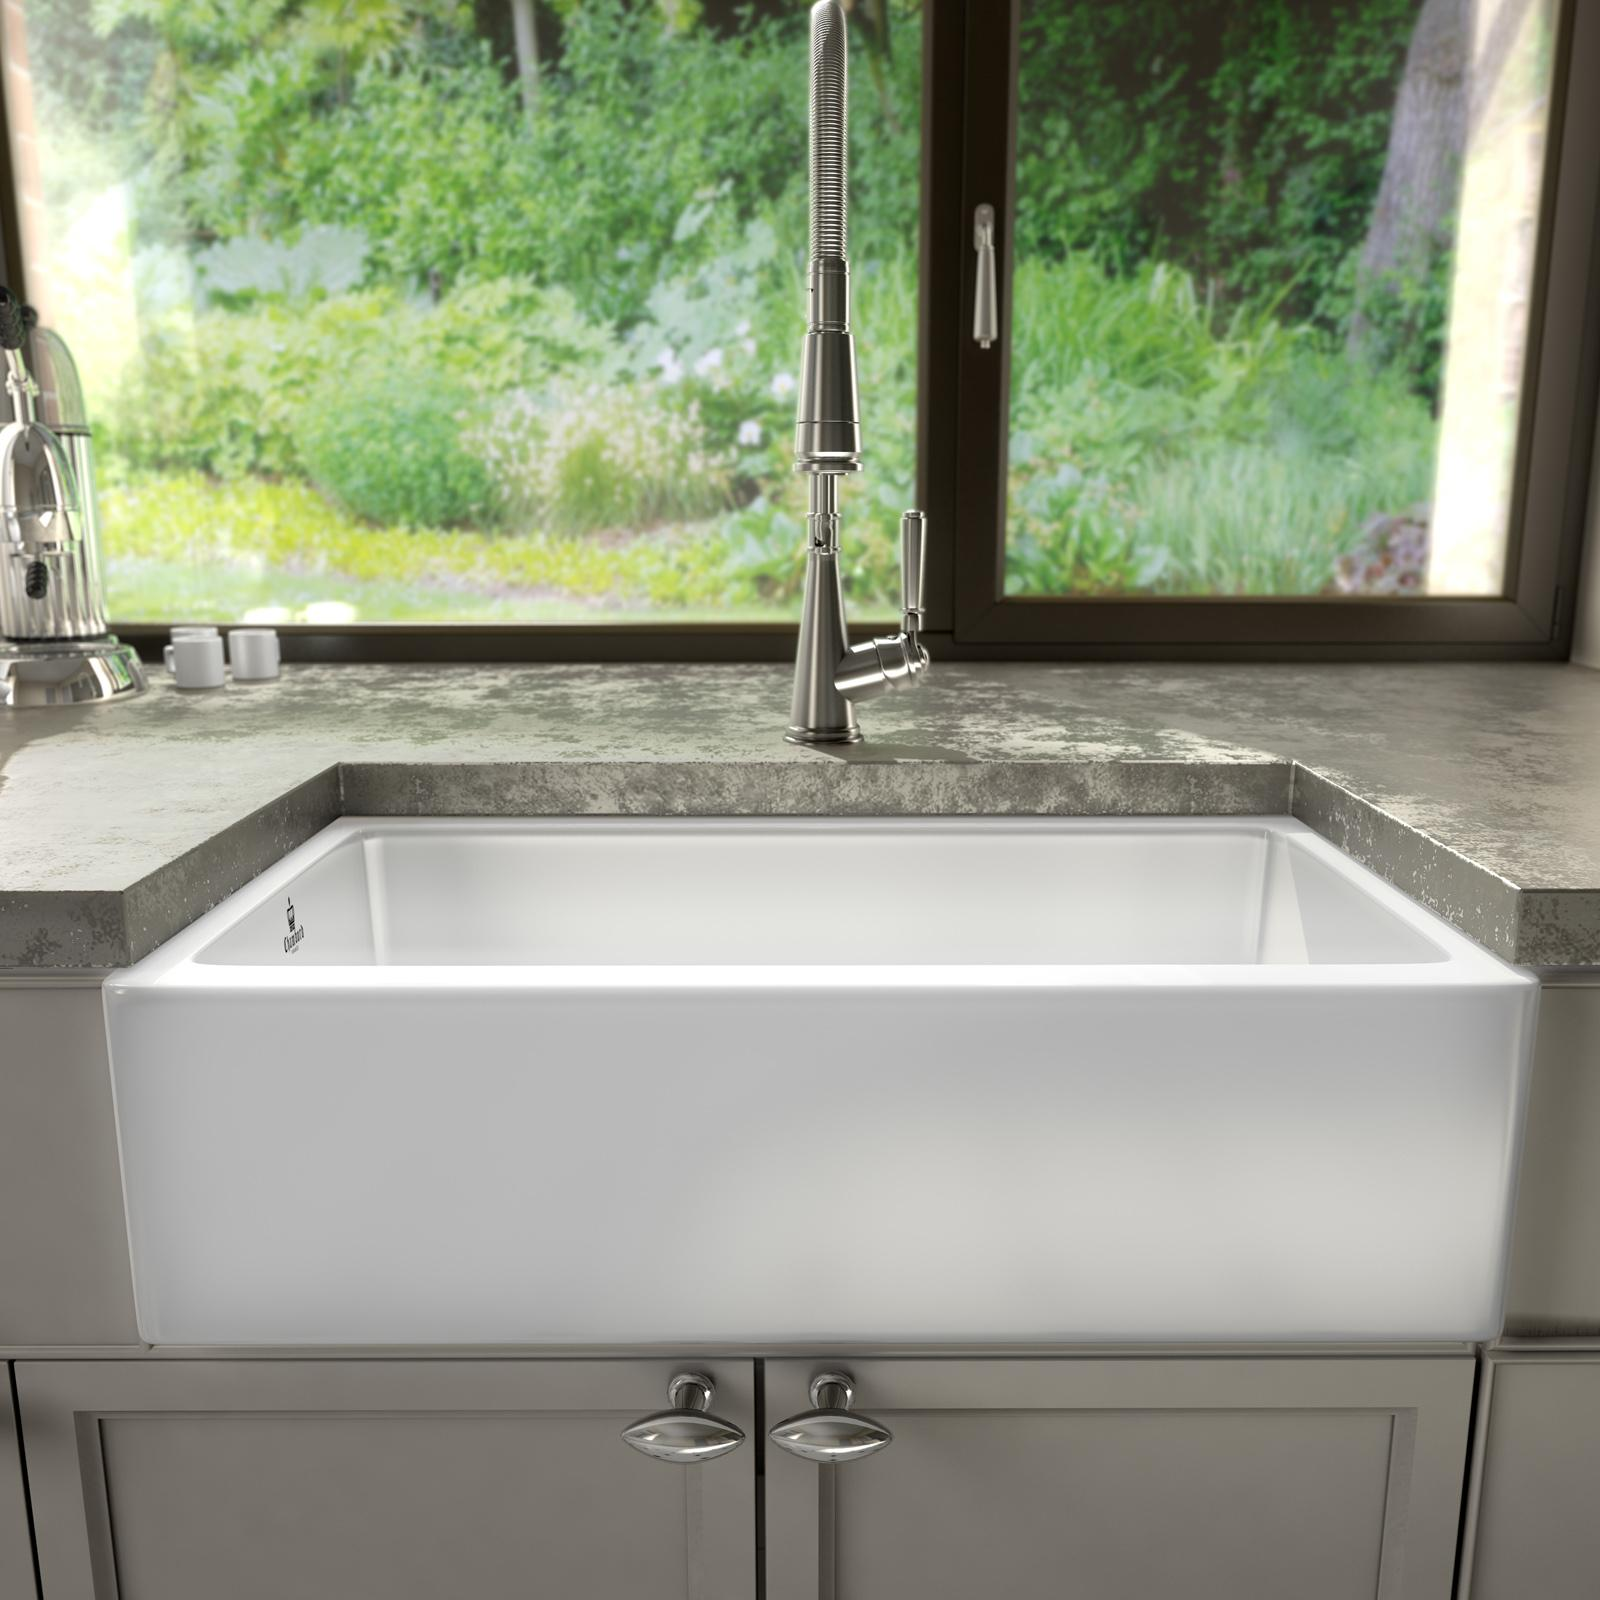 High-quality sink Philippe III - single bowl, ceramic - ambience 1